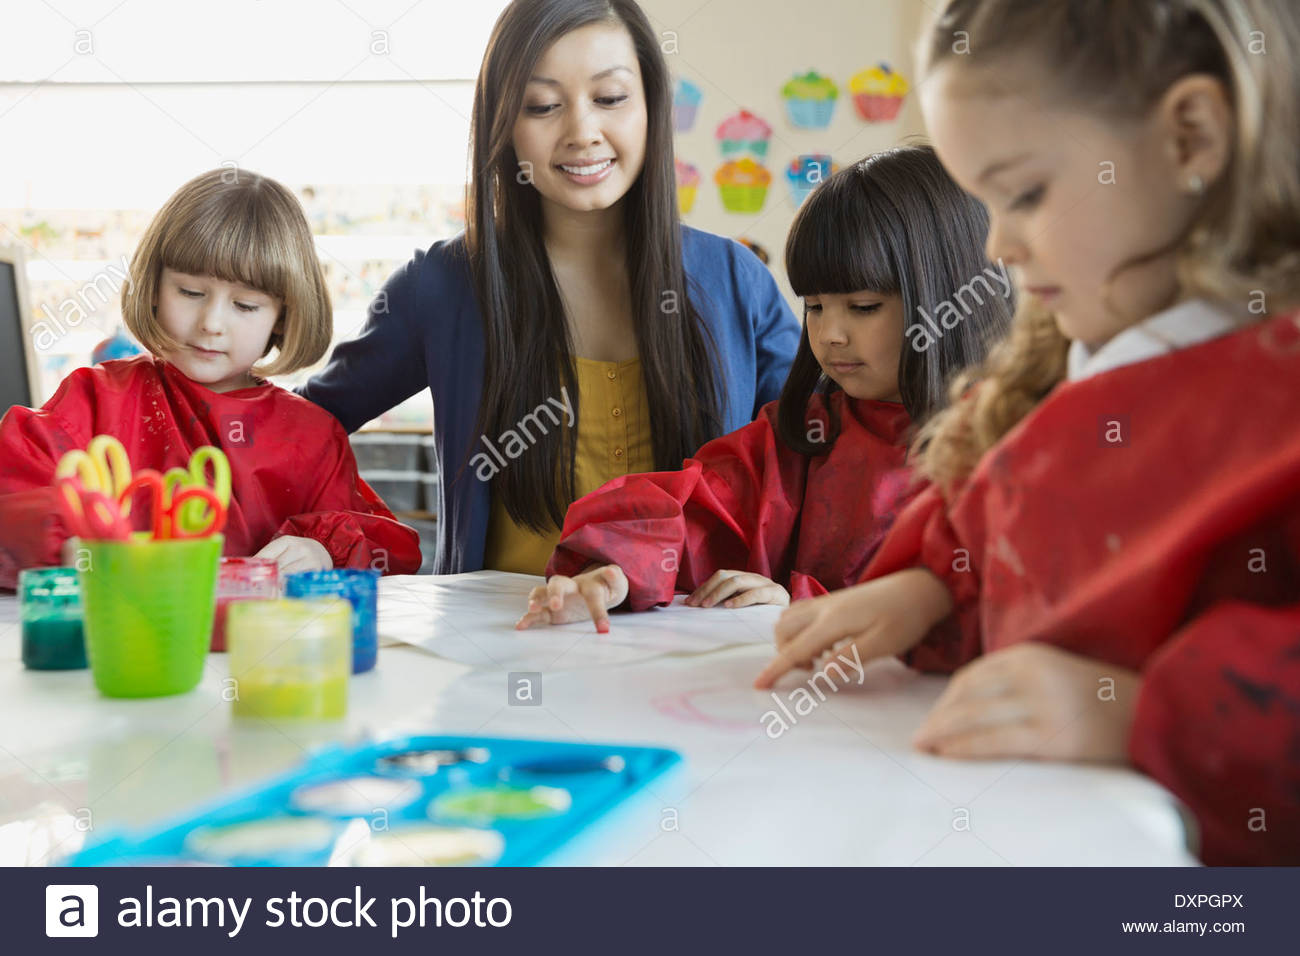 Teacher with students in art class - Stock Image